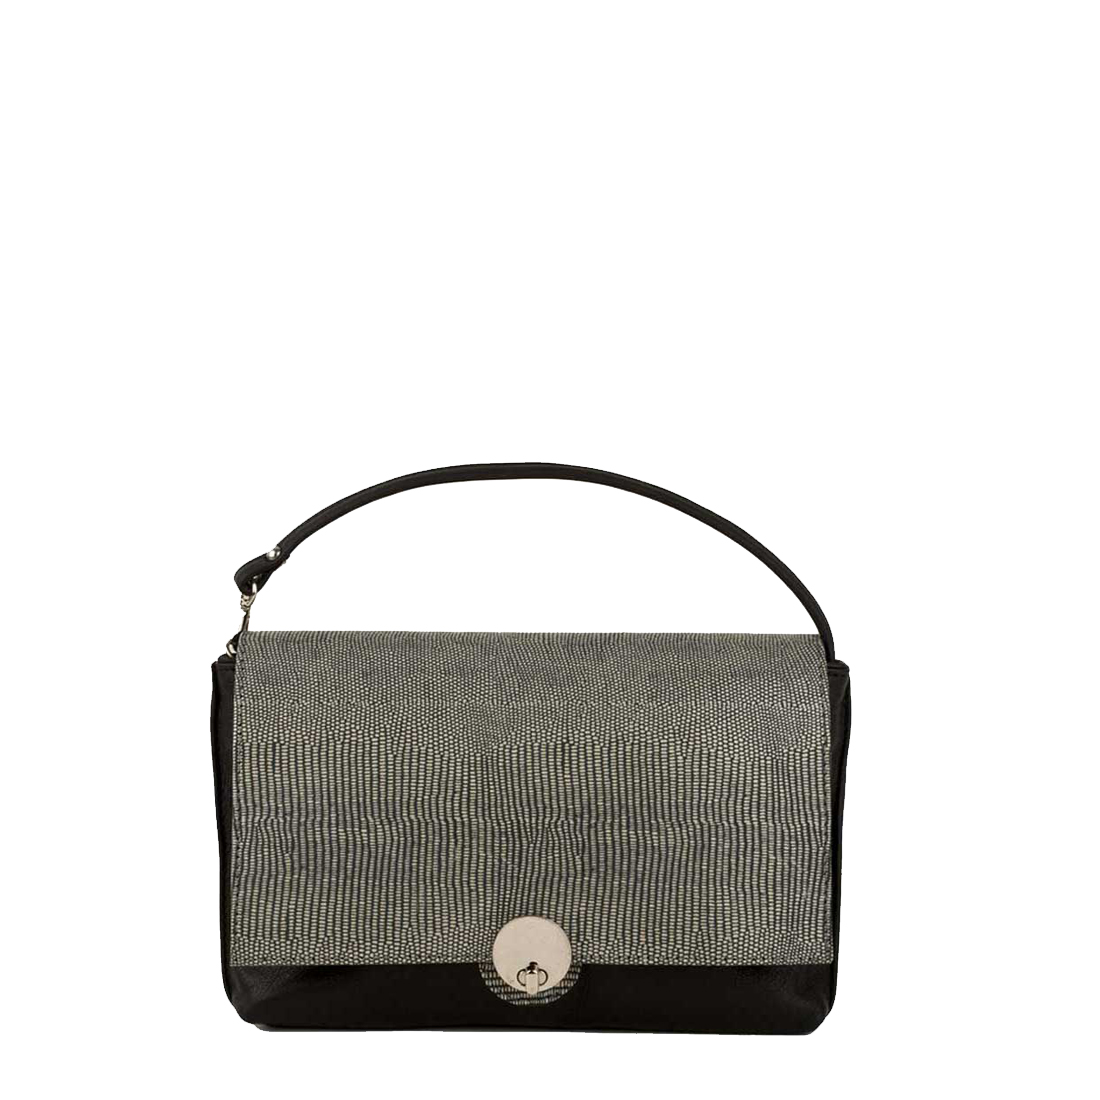 Riley Black Clutch Leather Handbag